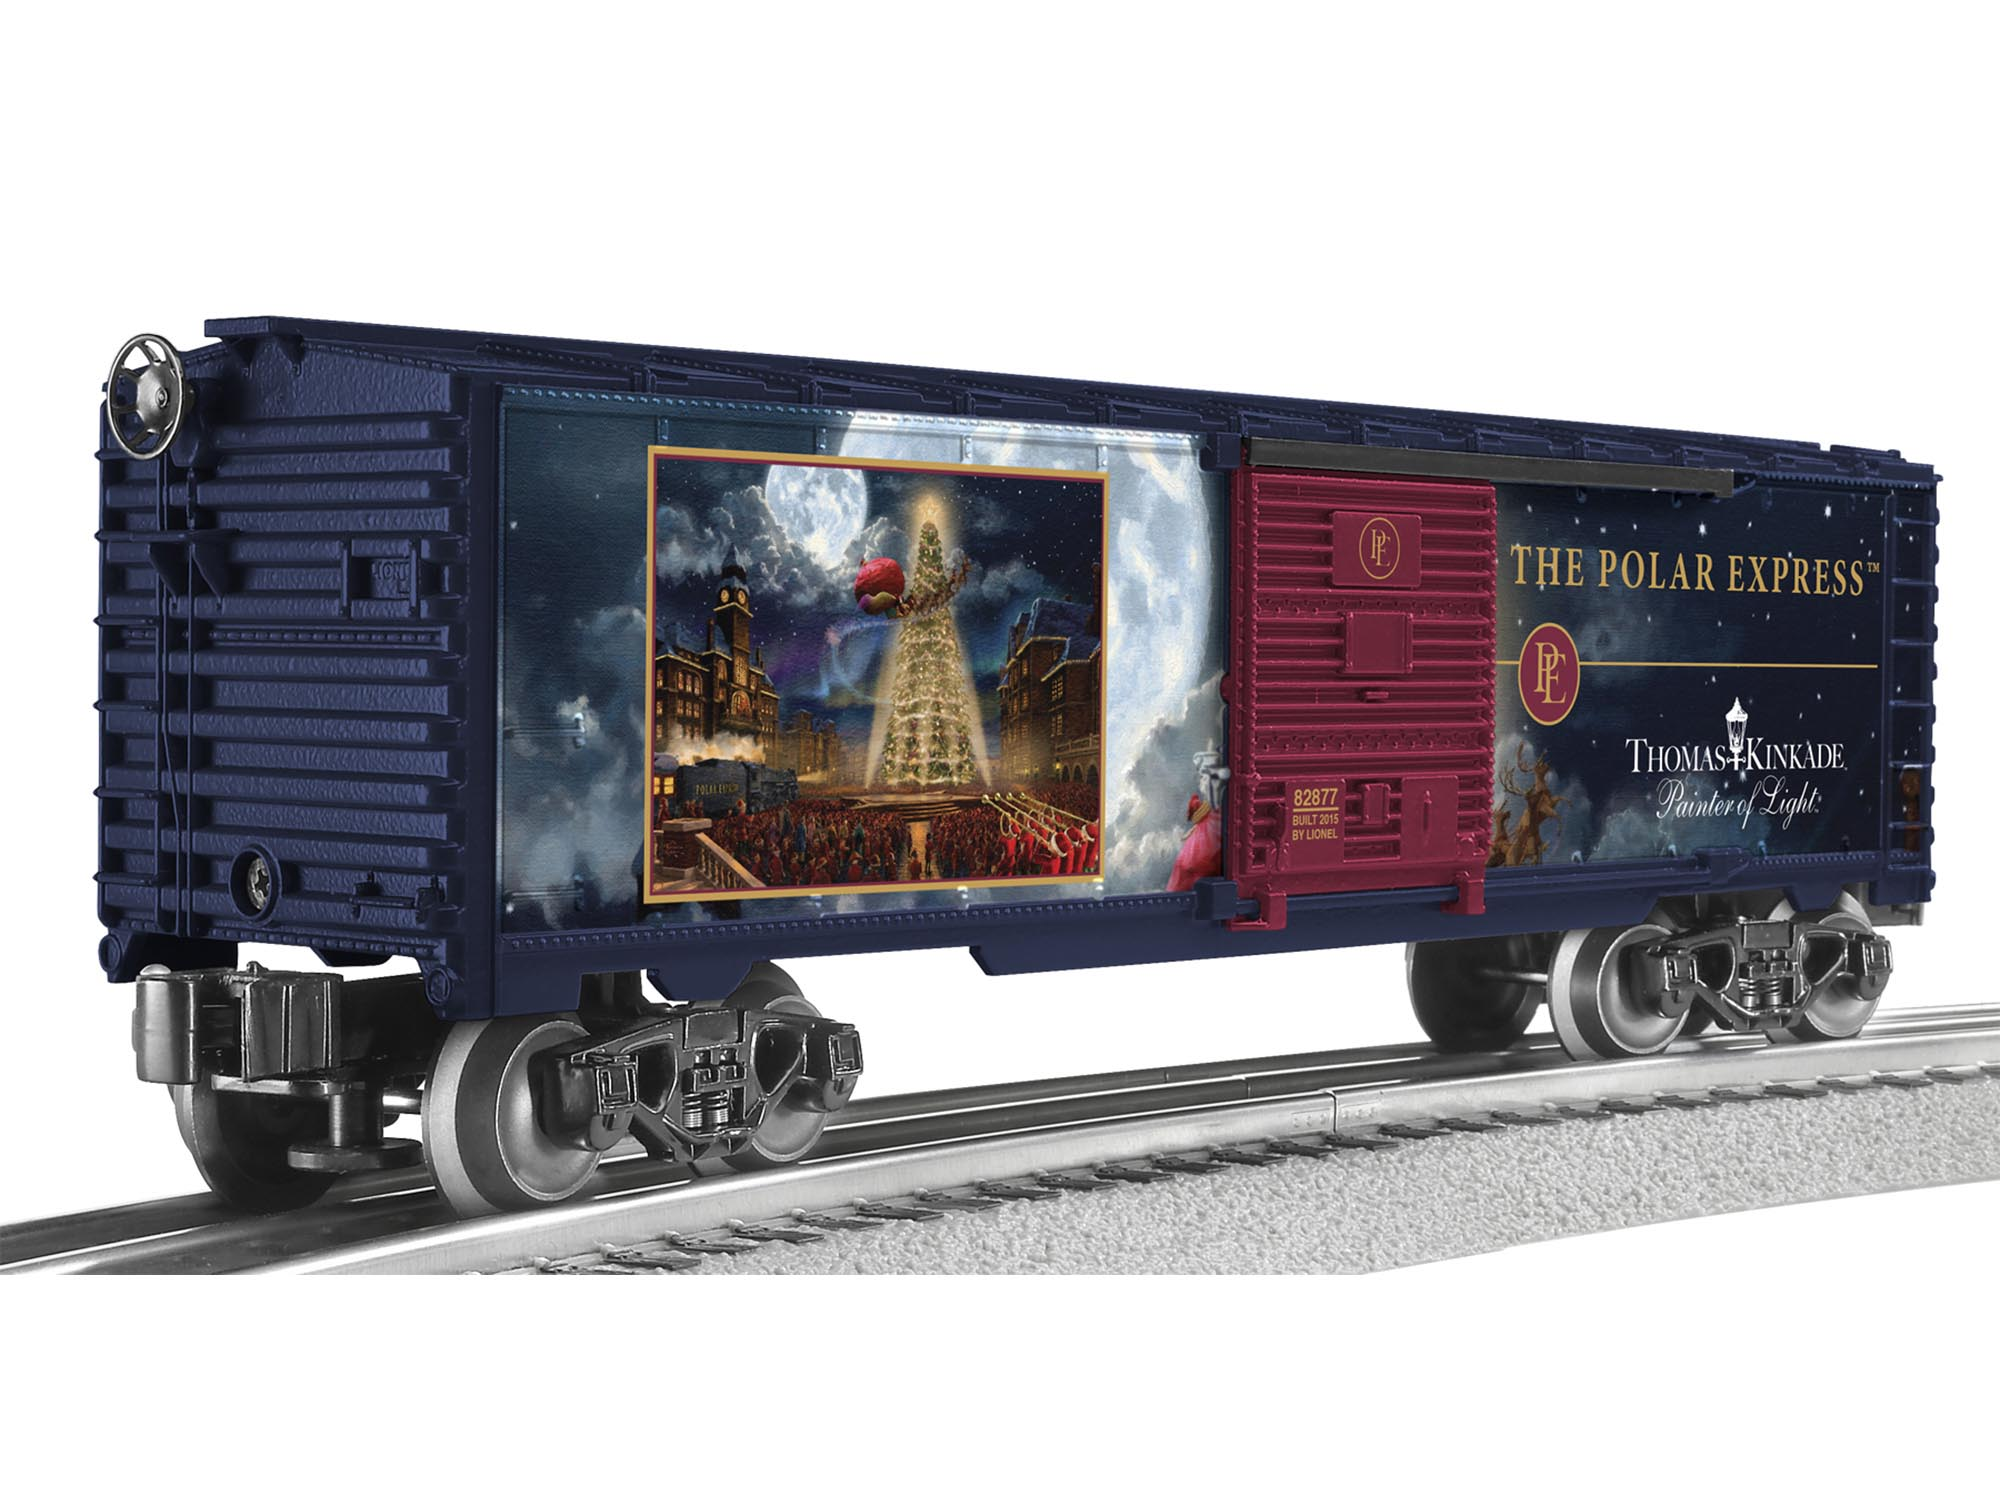 USA Model Trains: Model Trains Made in the USA at Lionel